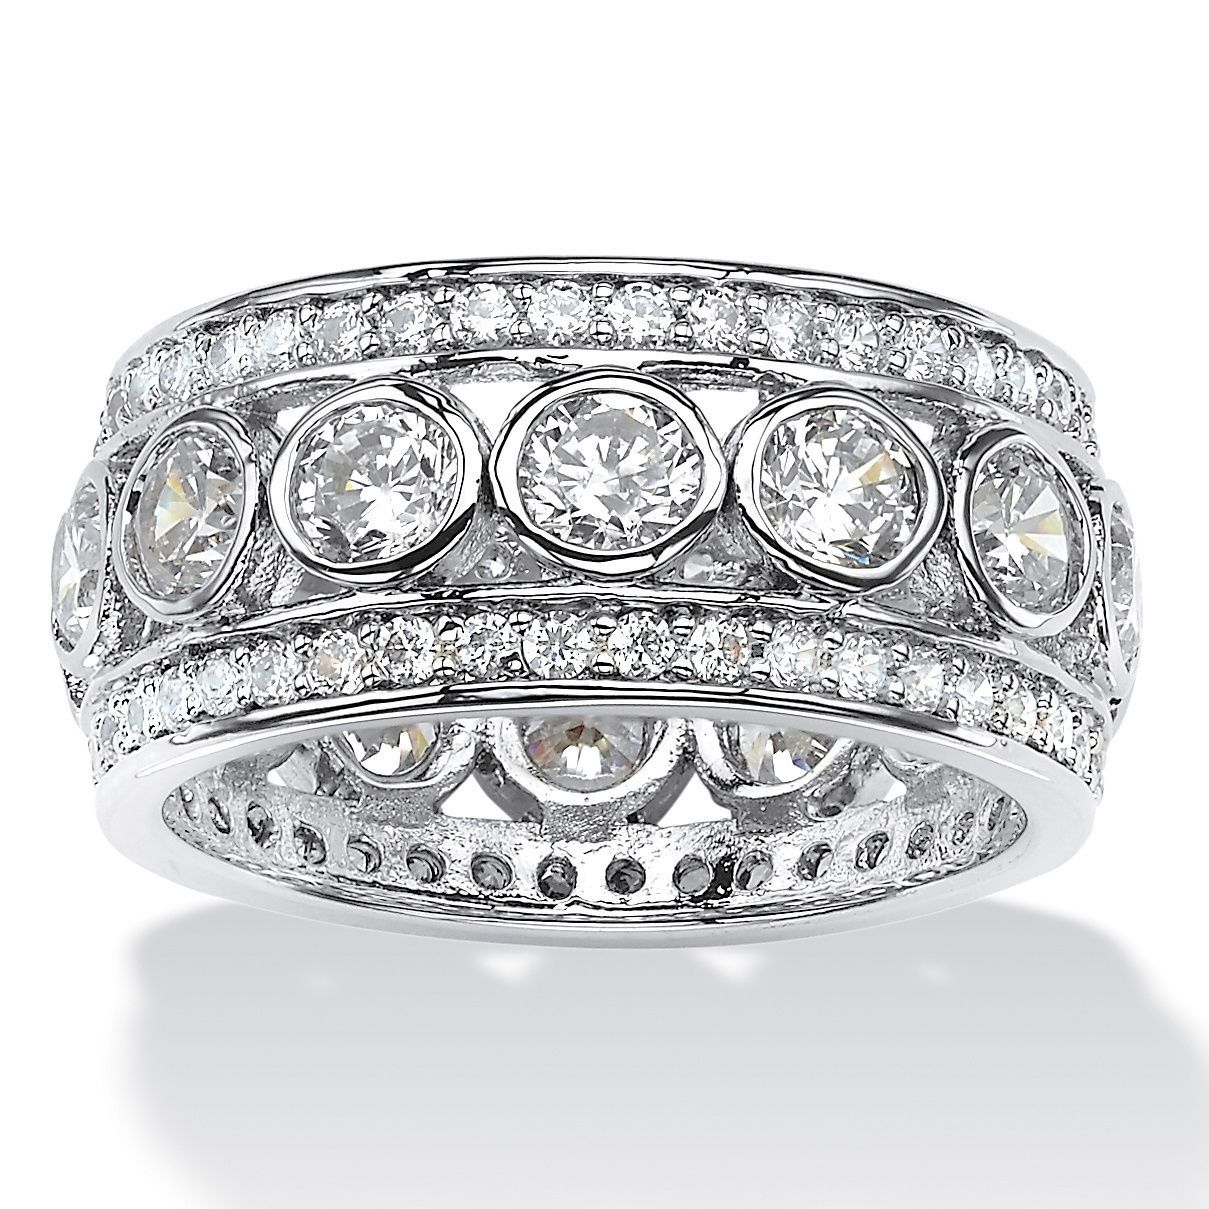 Constructed of platinum over silver, this jewelry adds flair and fashion to your style. The grand eternity ring showcases a shining finish and cubic zirconia gemstones.